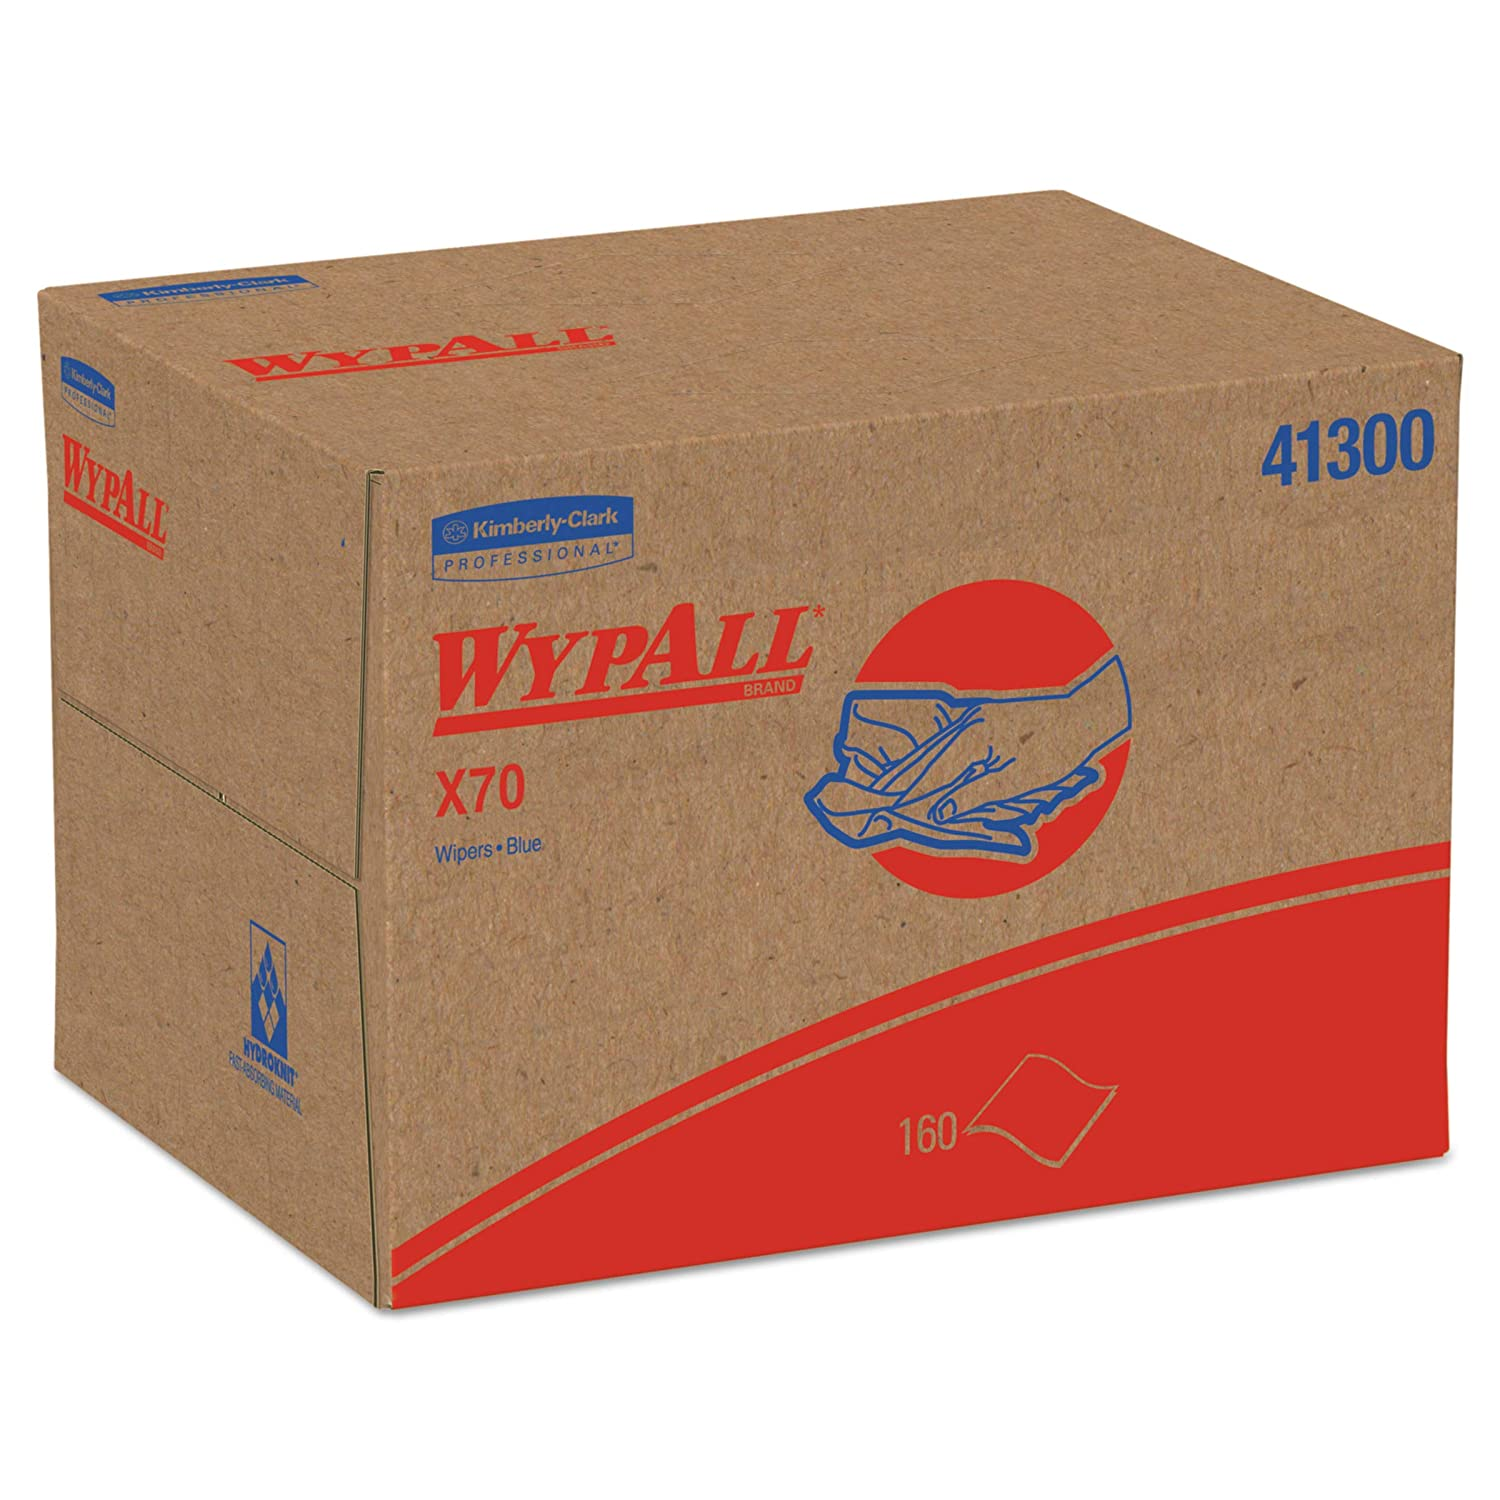 Max 47% OFF WypAll X70 Extended Popular brand Use Reusable Box Cloths 41300 Brag Long